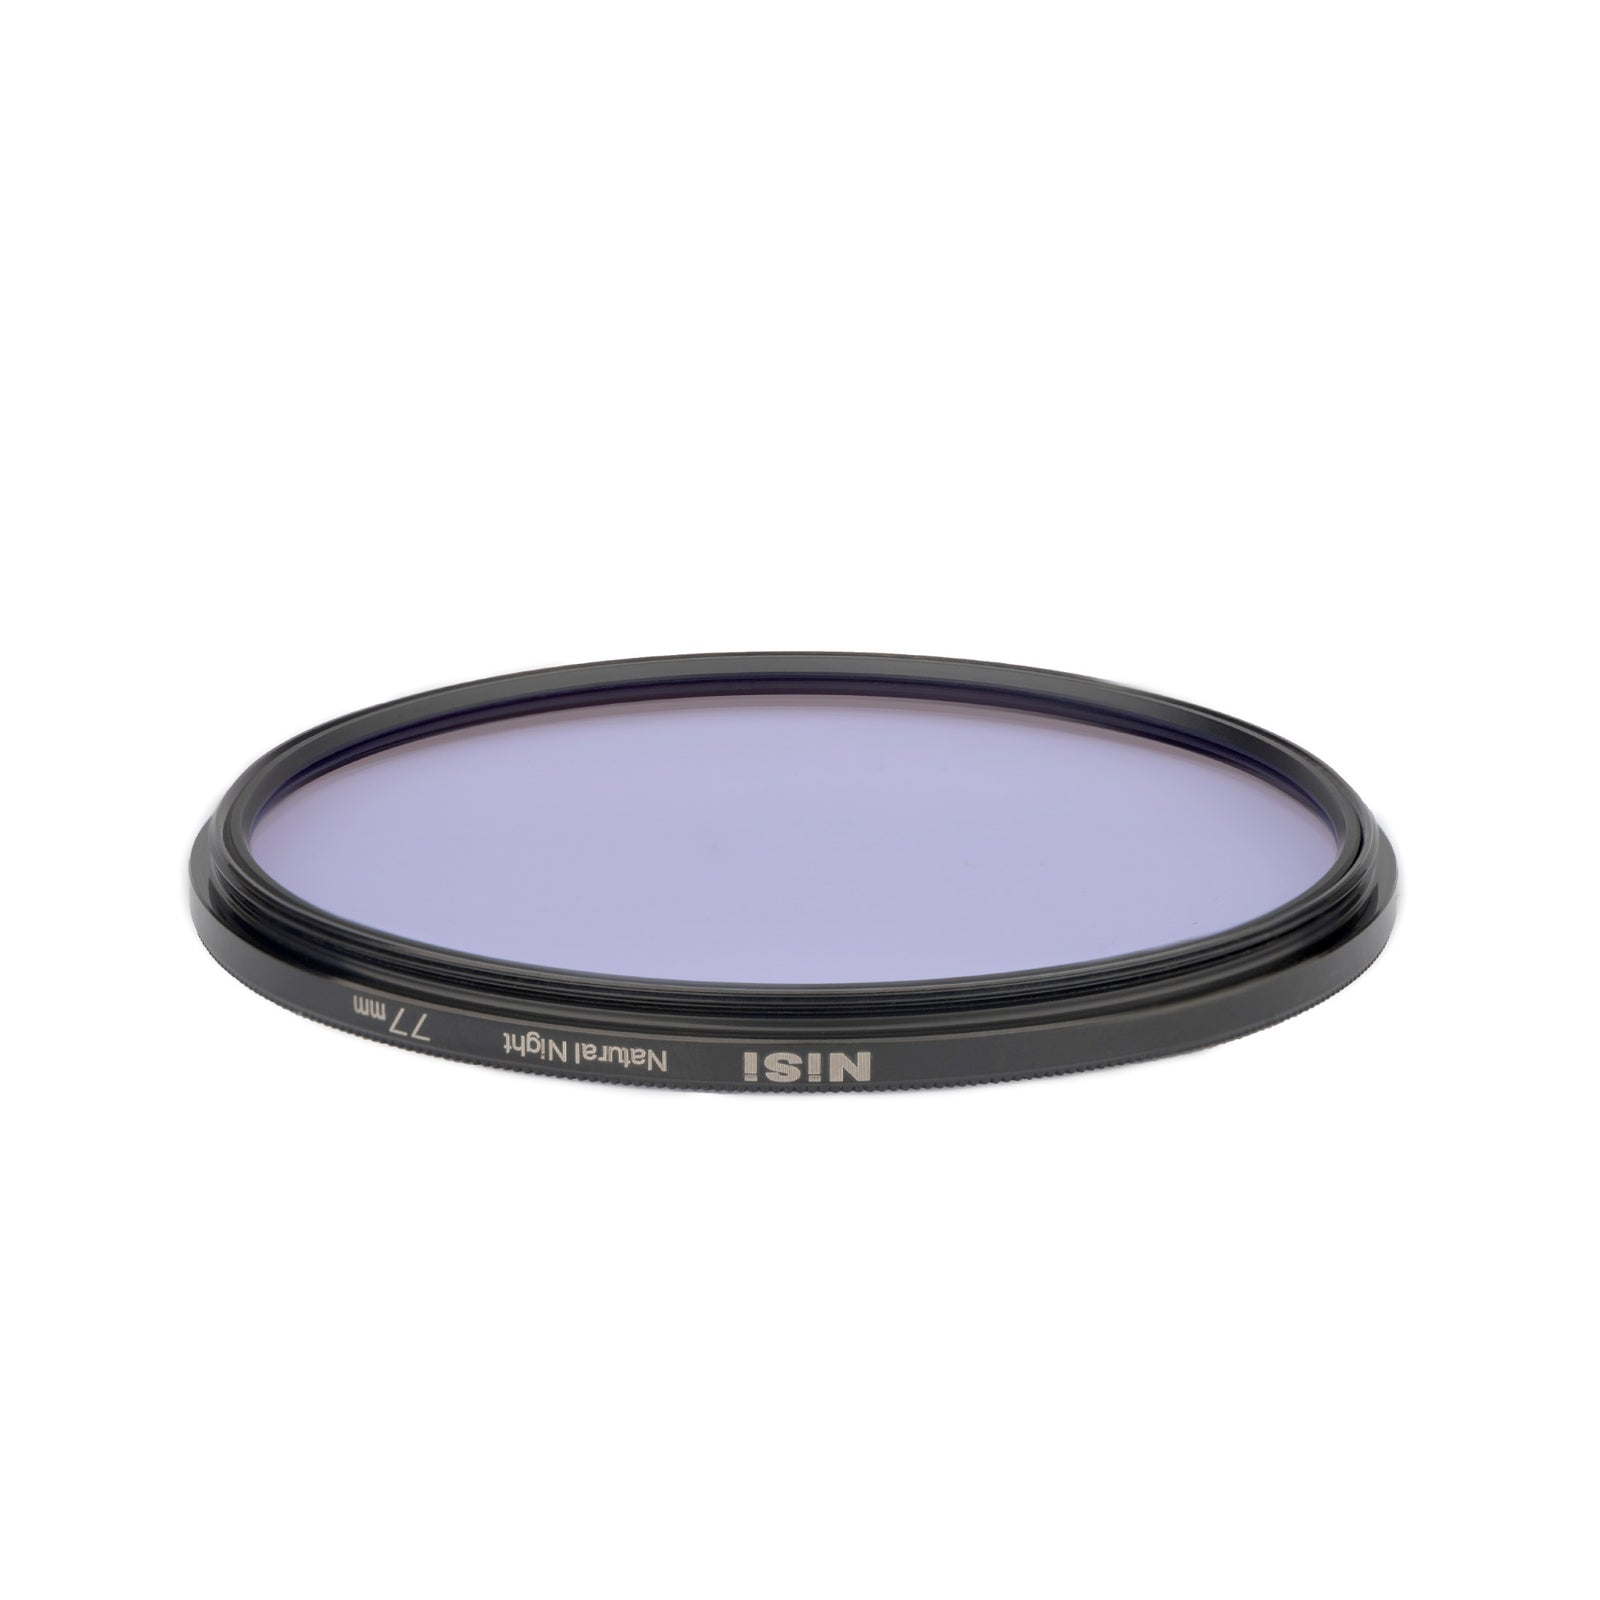 Circular-82mm-Night-Scene-Astro-Photography-Filter-Nisi-Filters-Natural-Night-Circular-Thread-Filter-Nisi_Filters-Australia